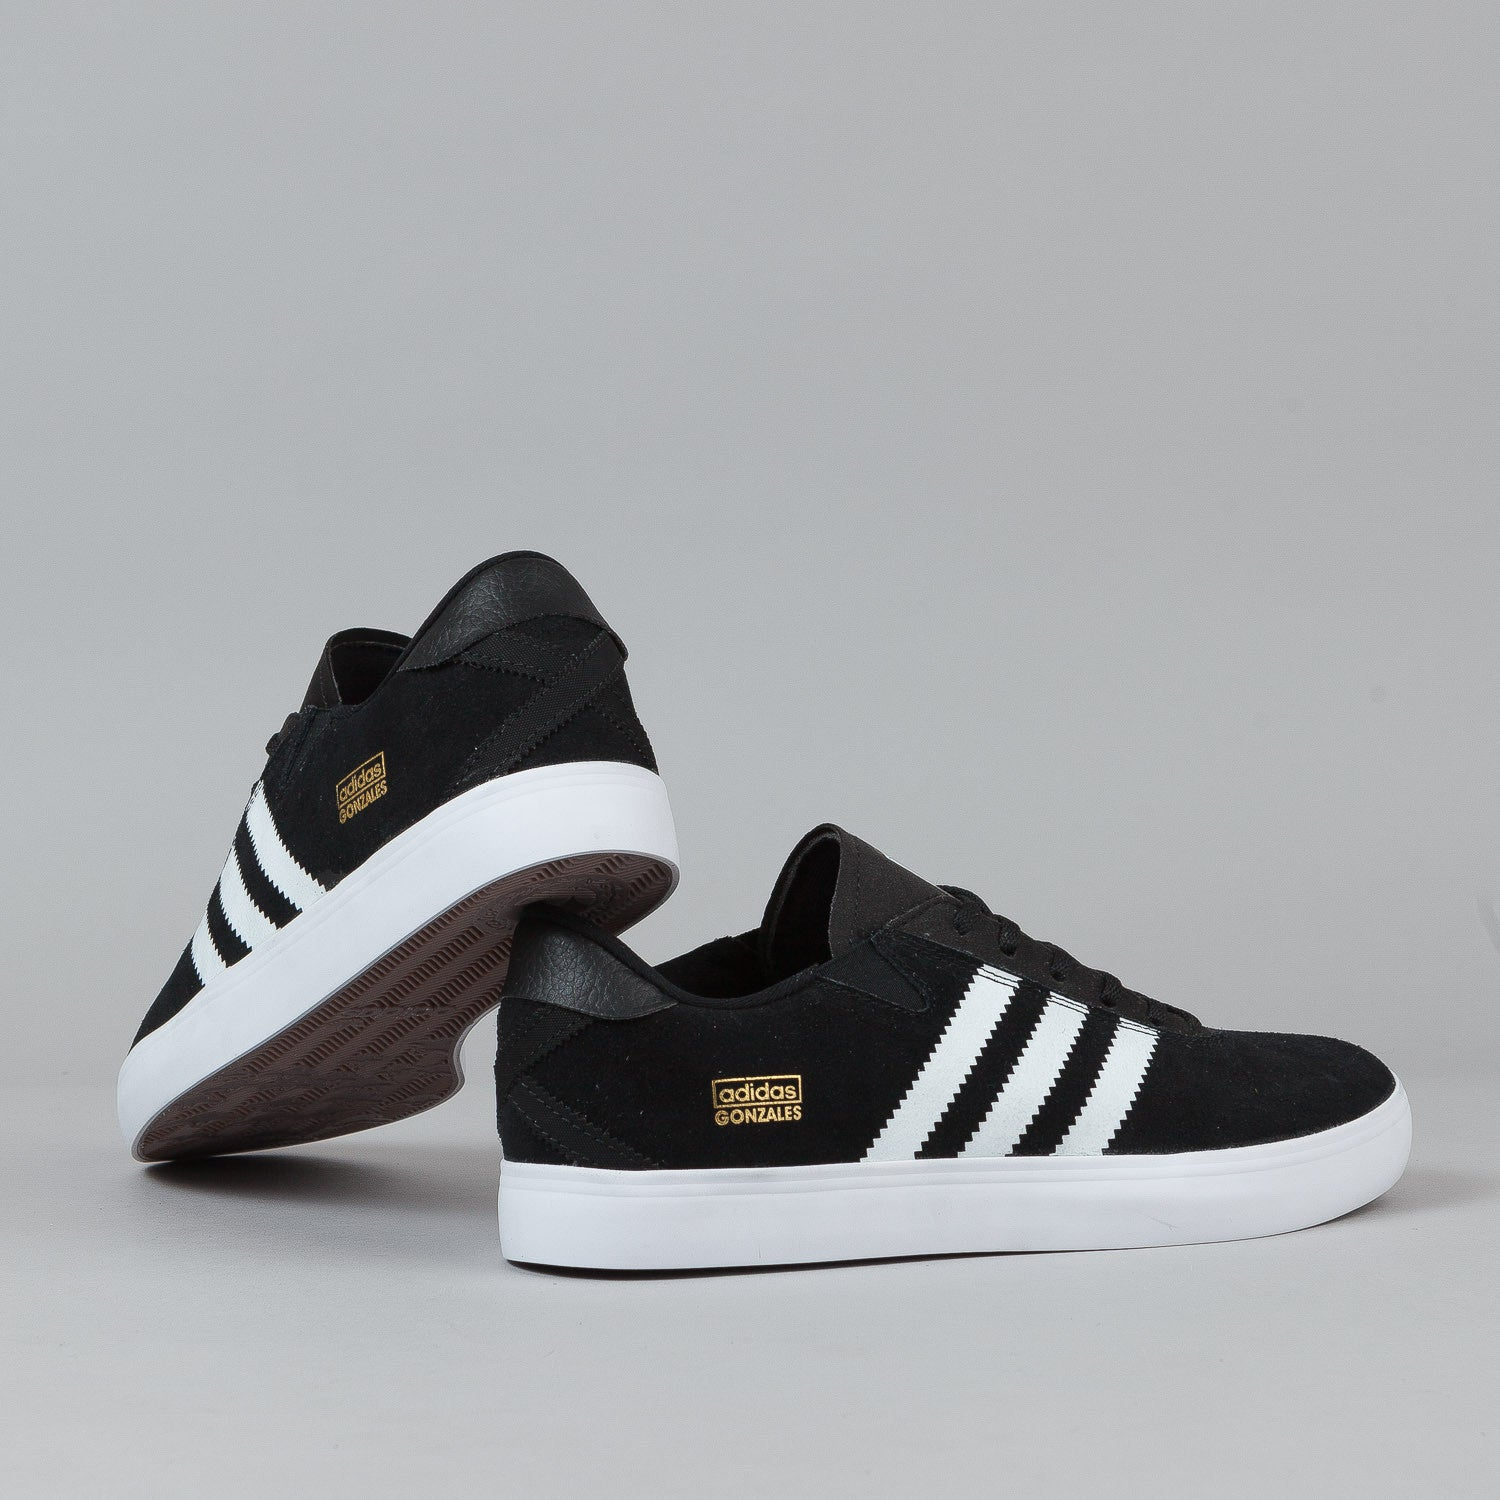 Adidas Gonz Pro Shoes - Black / White / Black